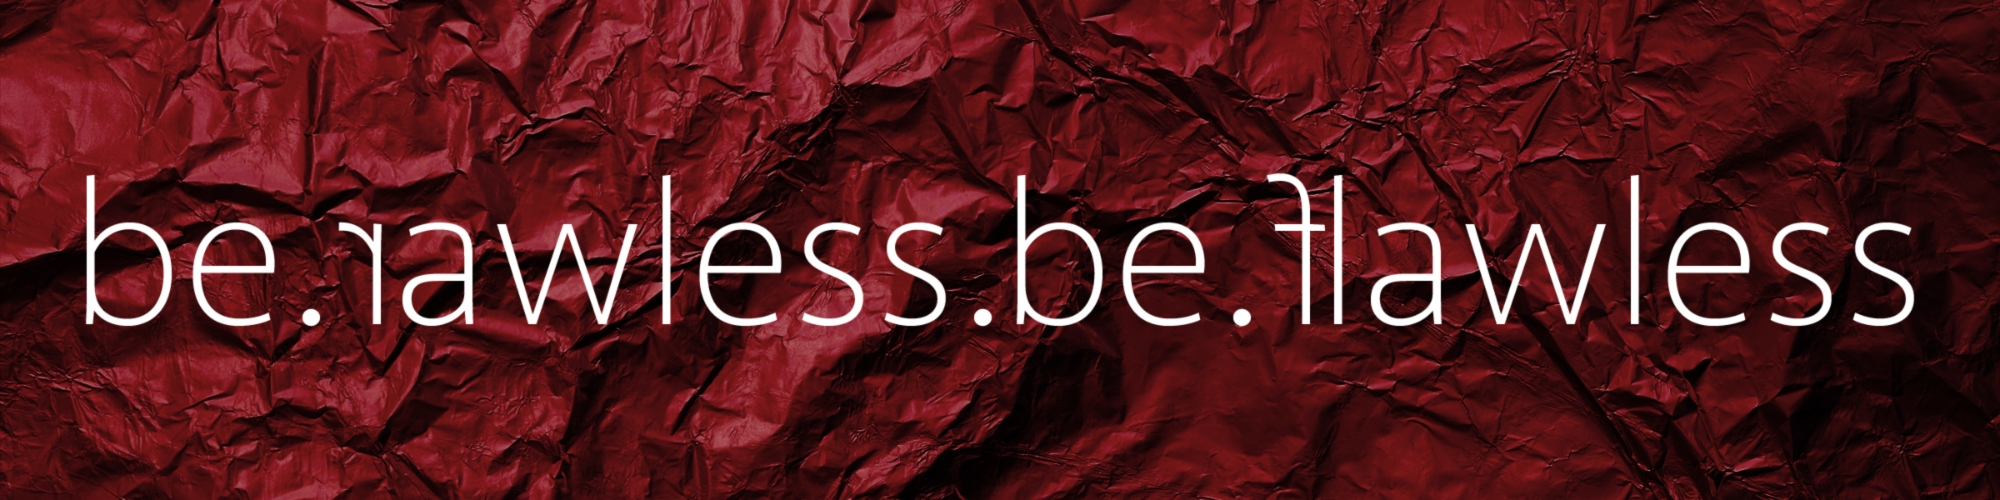 Galerie - be.rawless.be.flawless